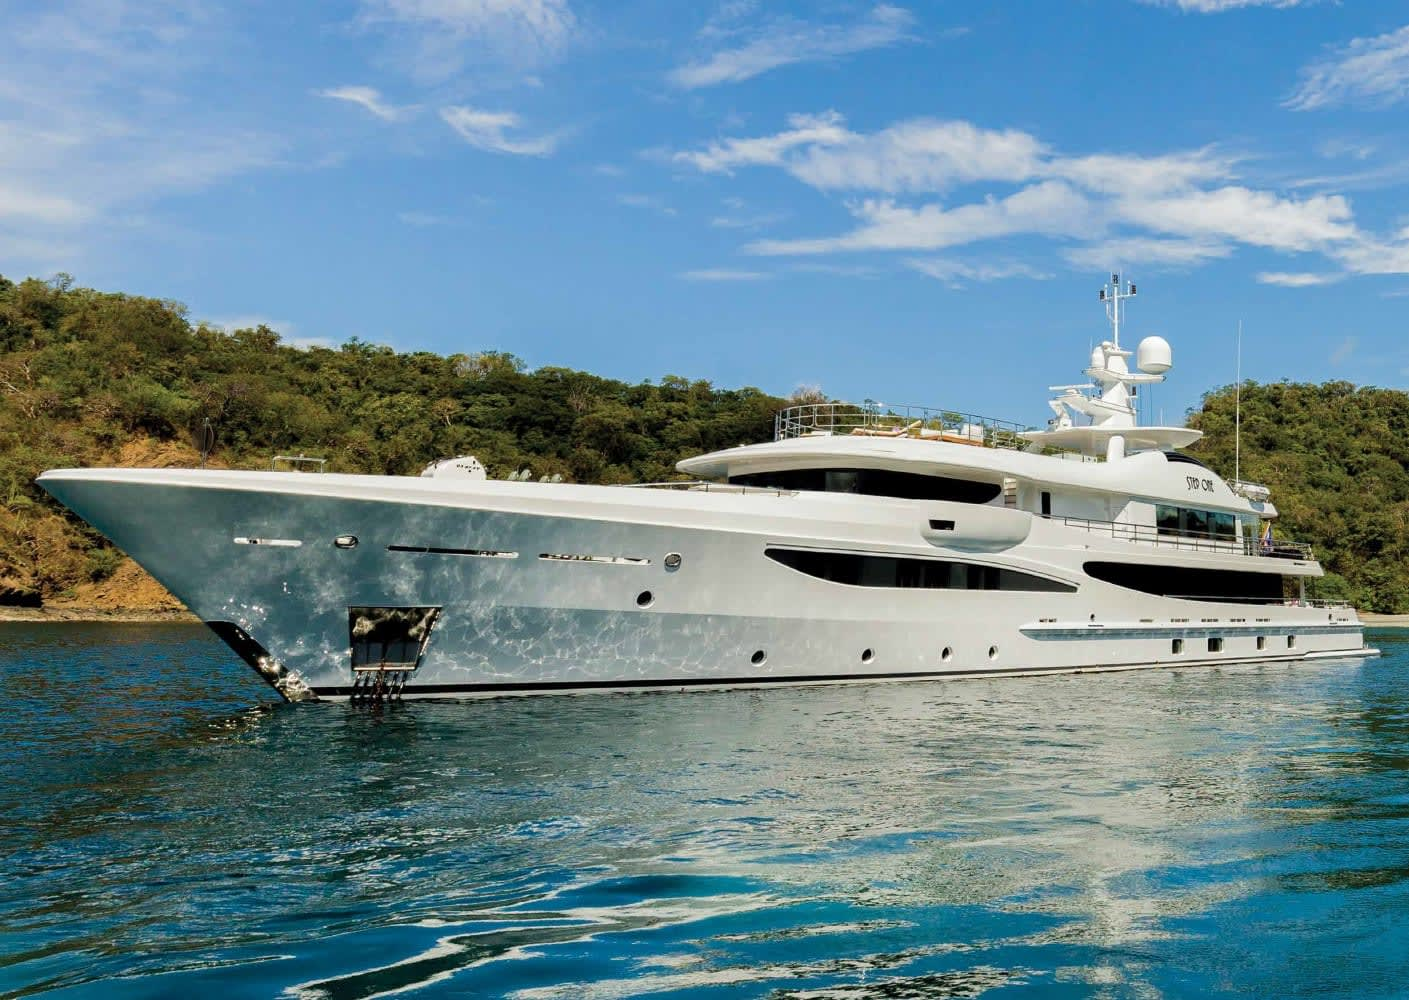 Image of Step One 55.0M (180.4FT) motor yacht